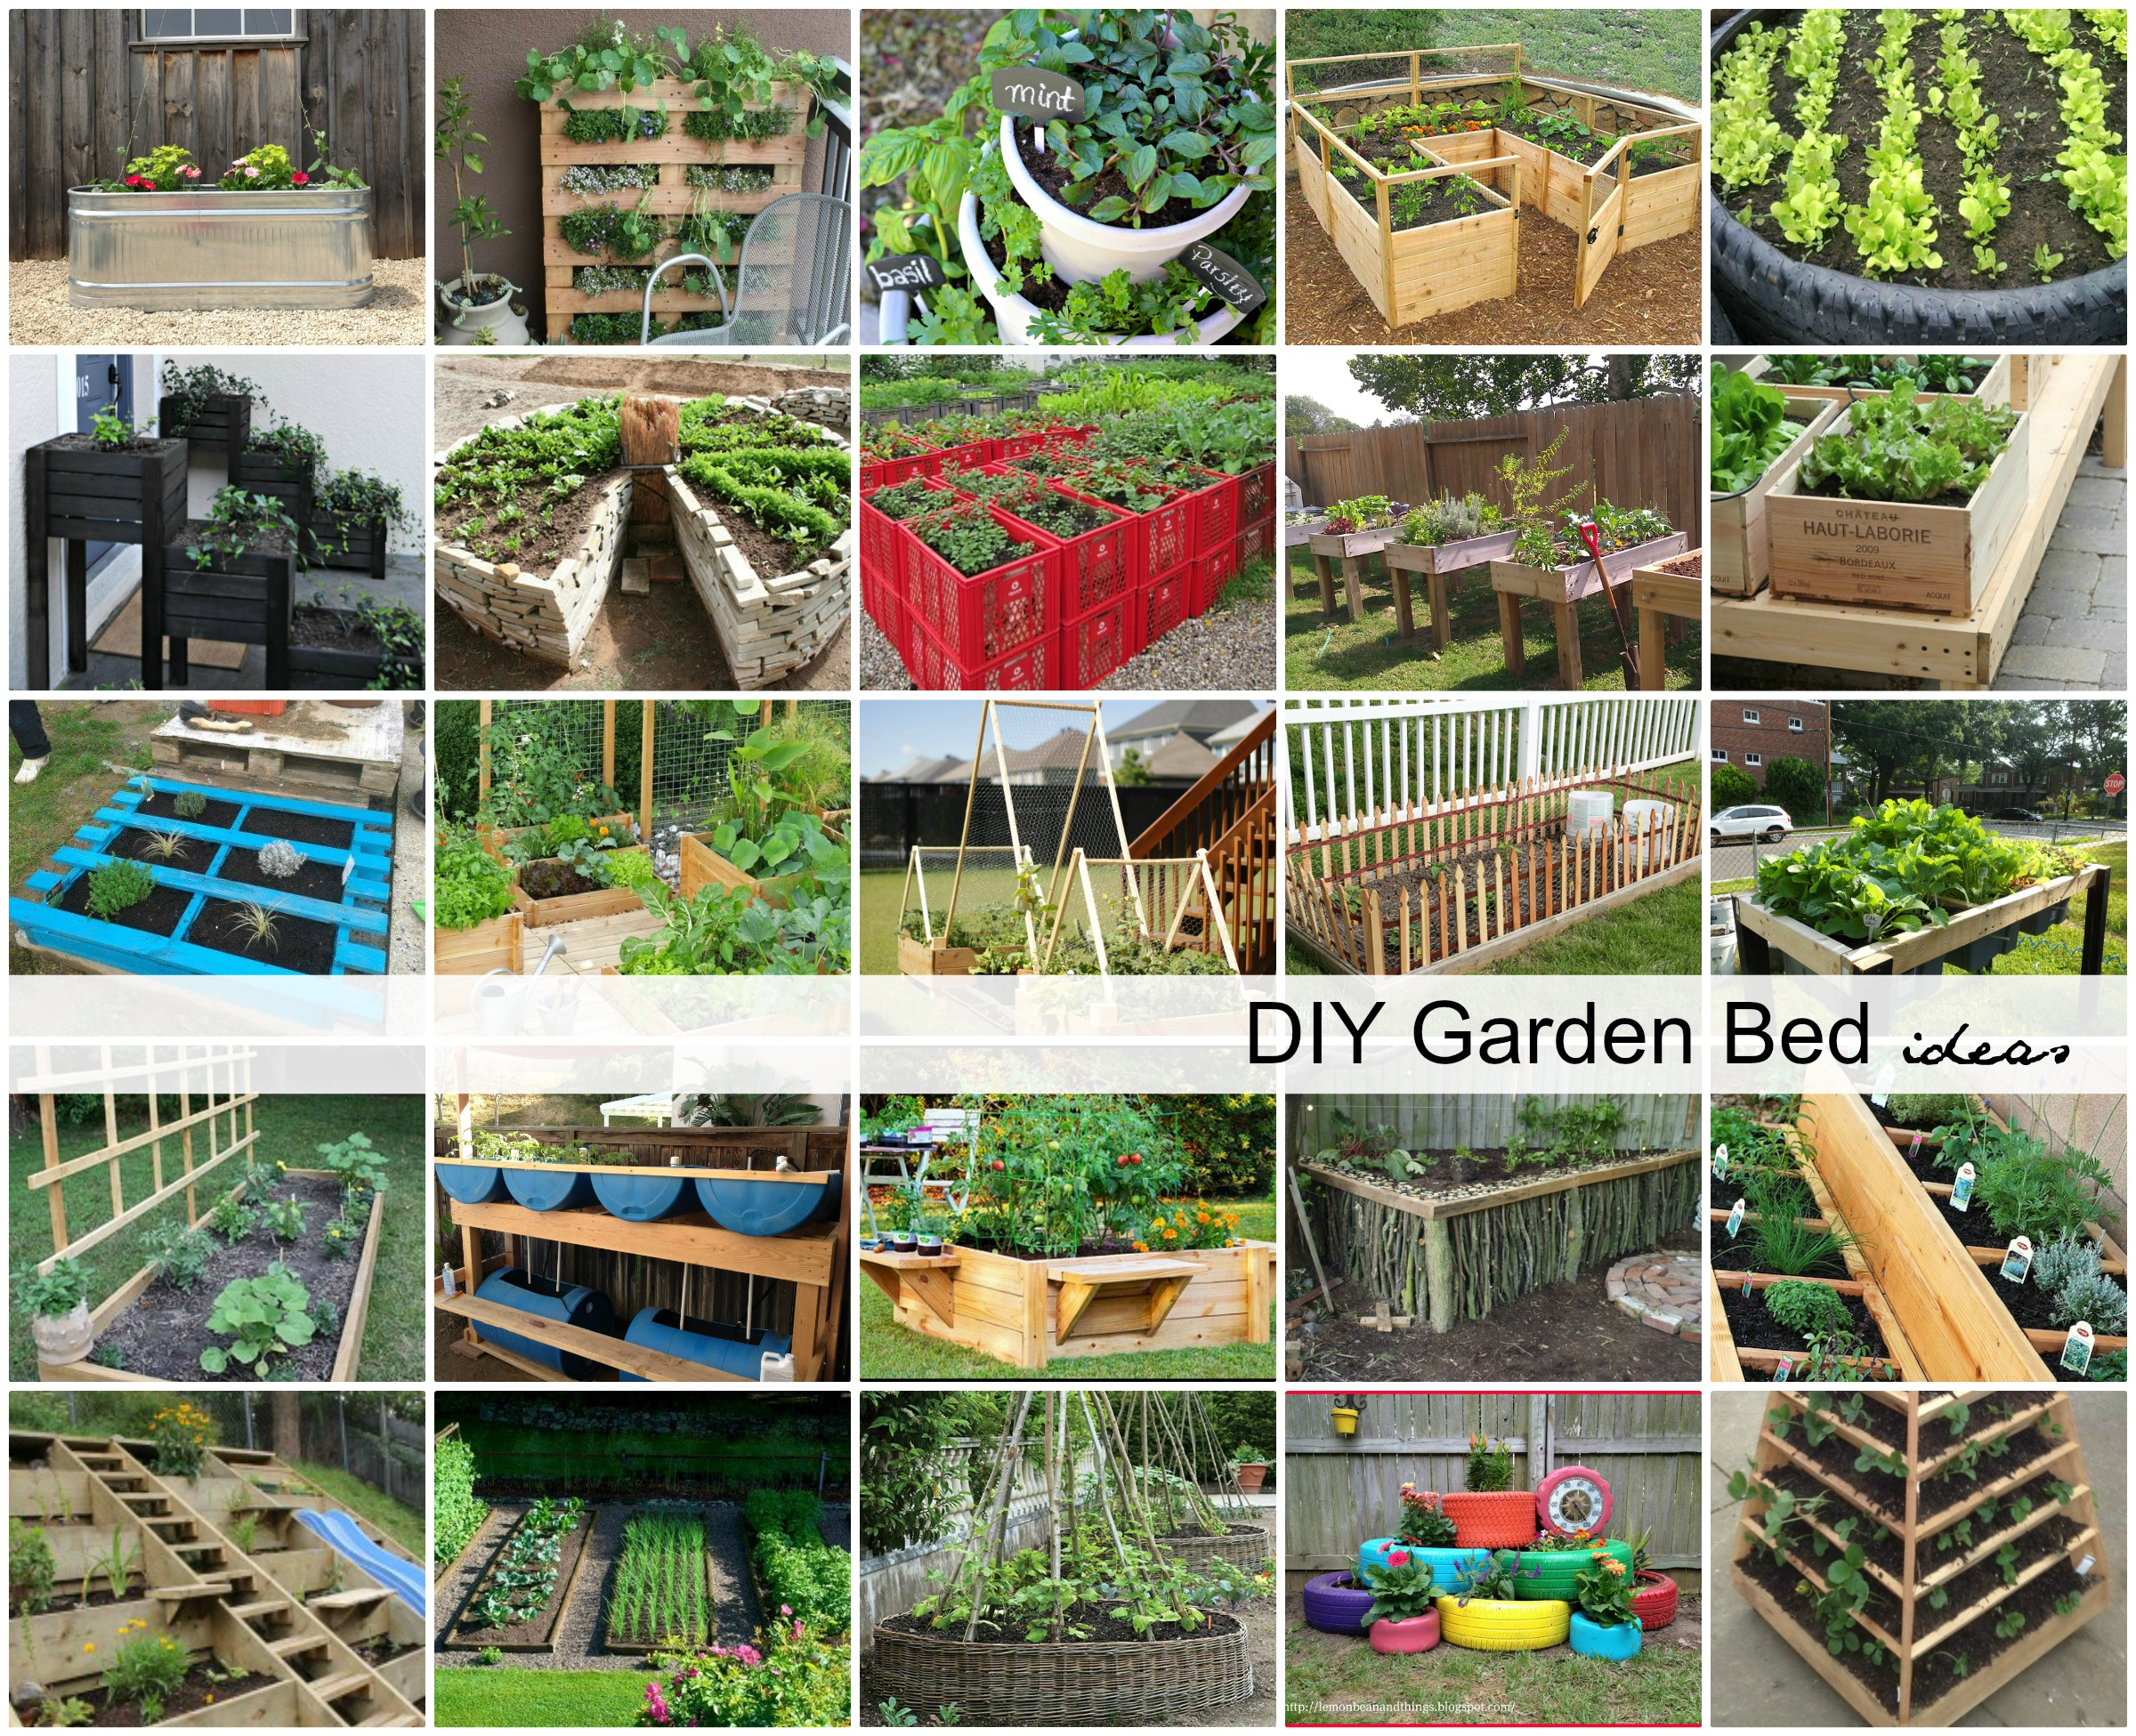 garden design with diy garden bed ideas the idea room with ideas for backyard landscaping from - Diy Garden Ideas